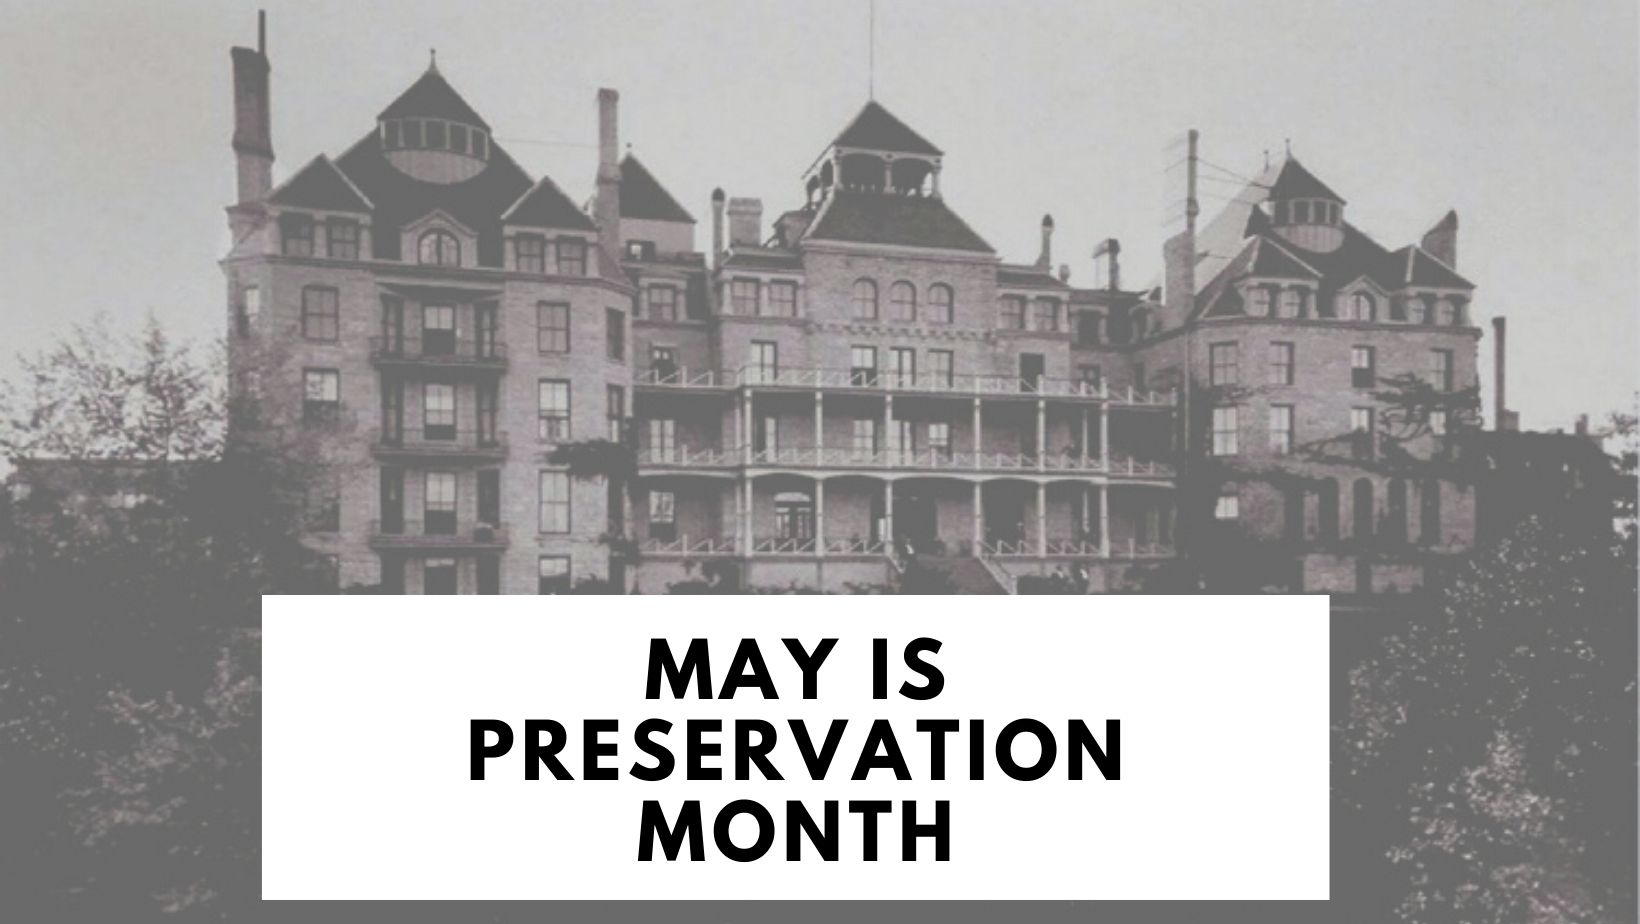 May is Preservation Month